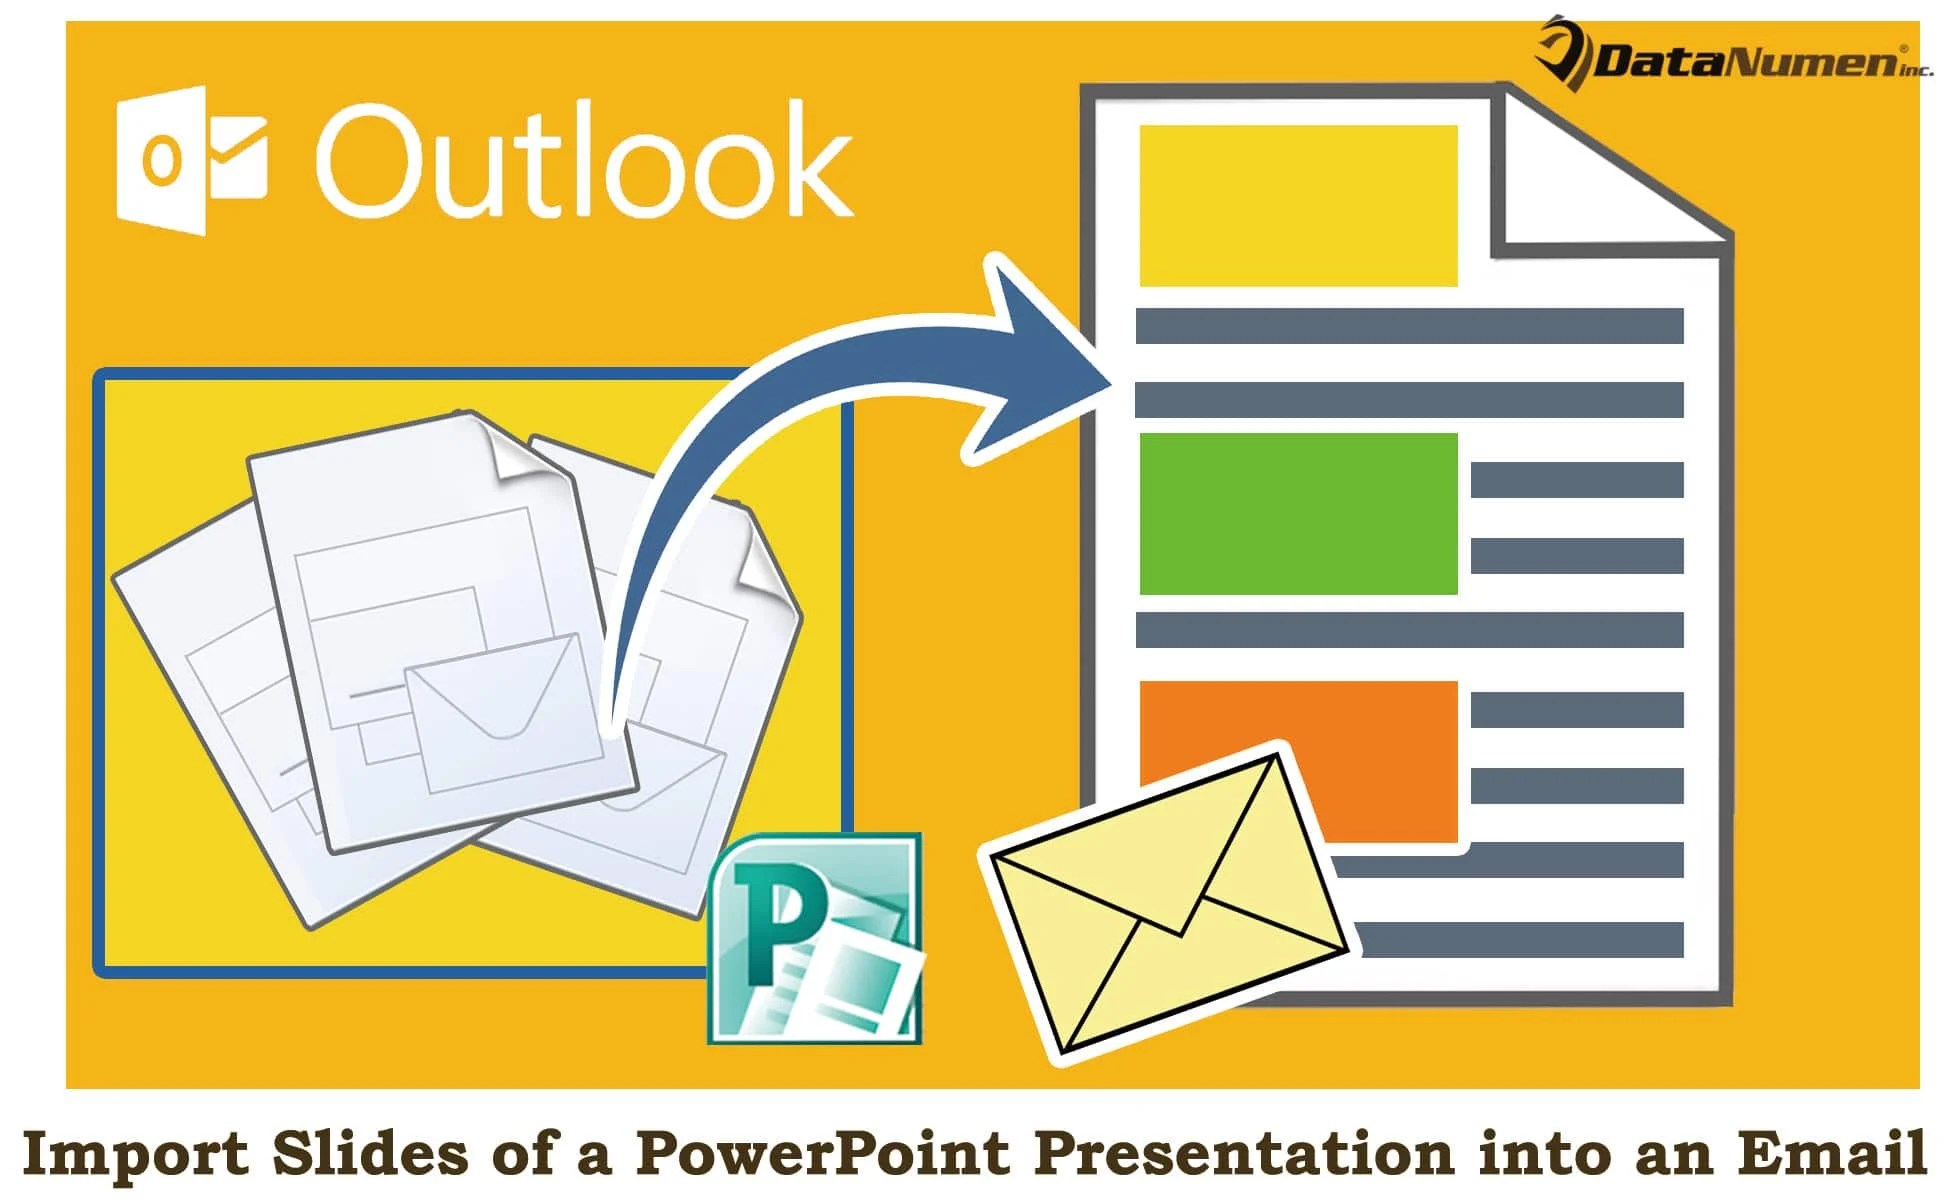 Quickly Import the Slides of a PowerPoint Presentation into Your Outlook Email